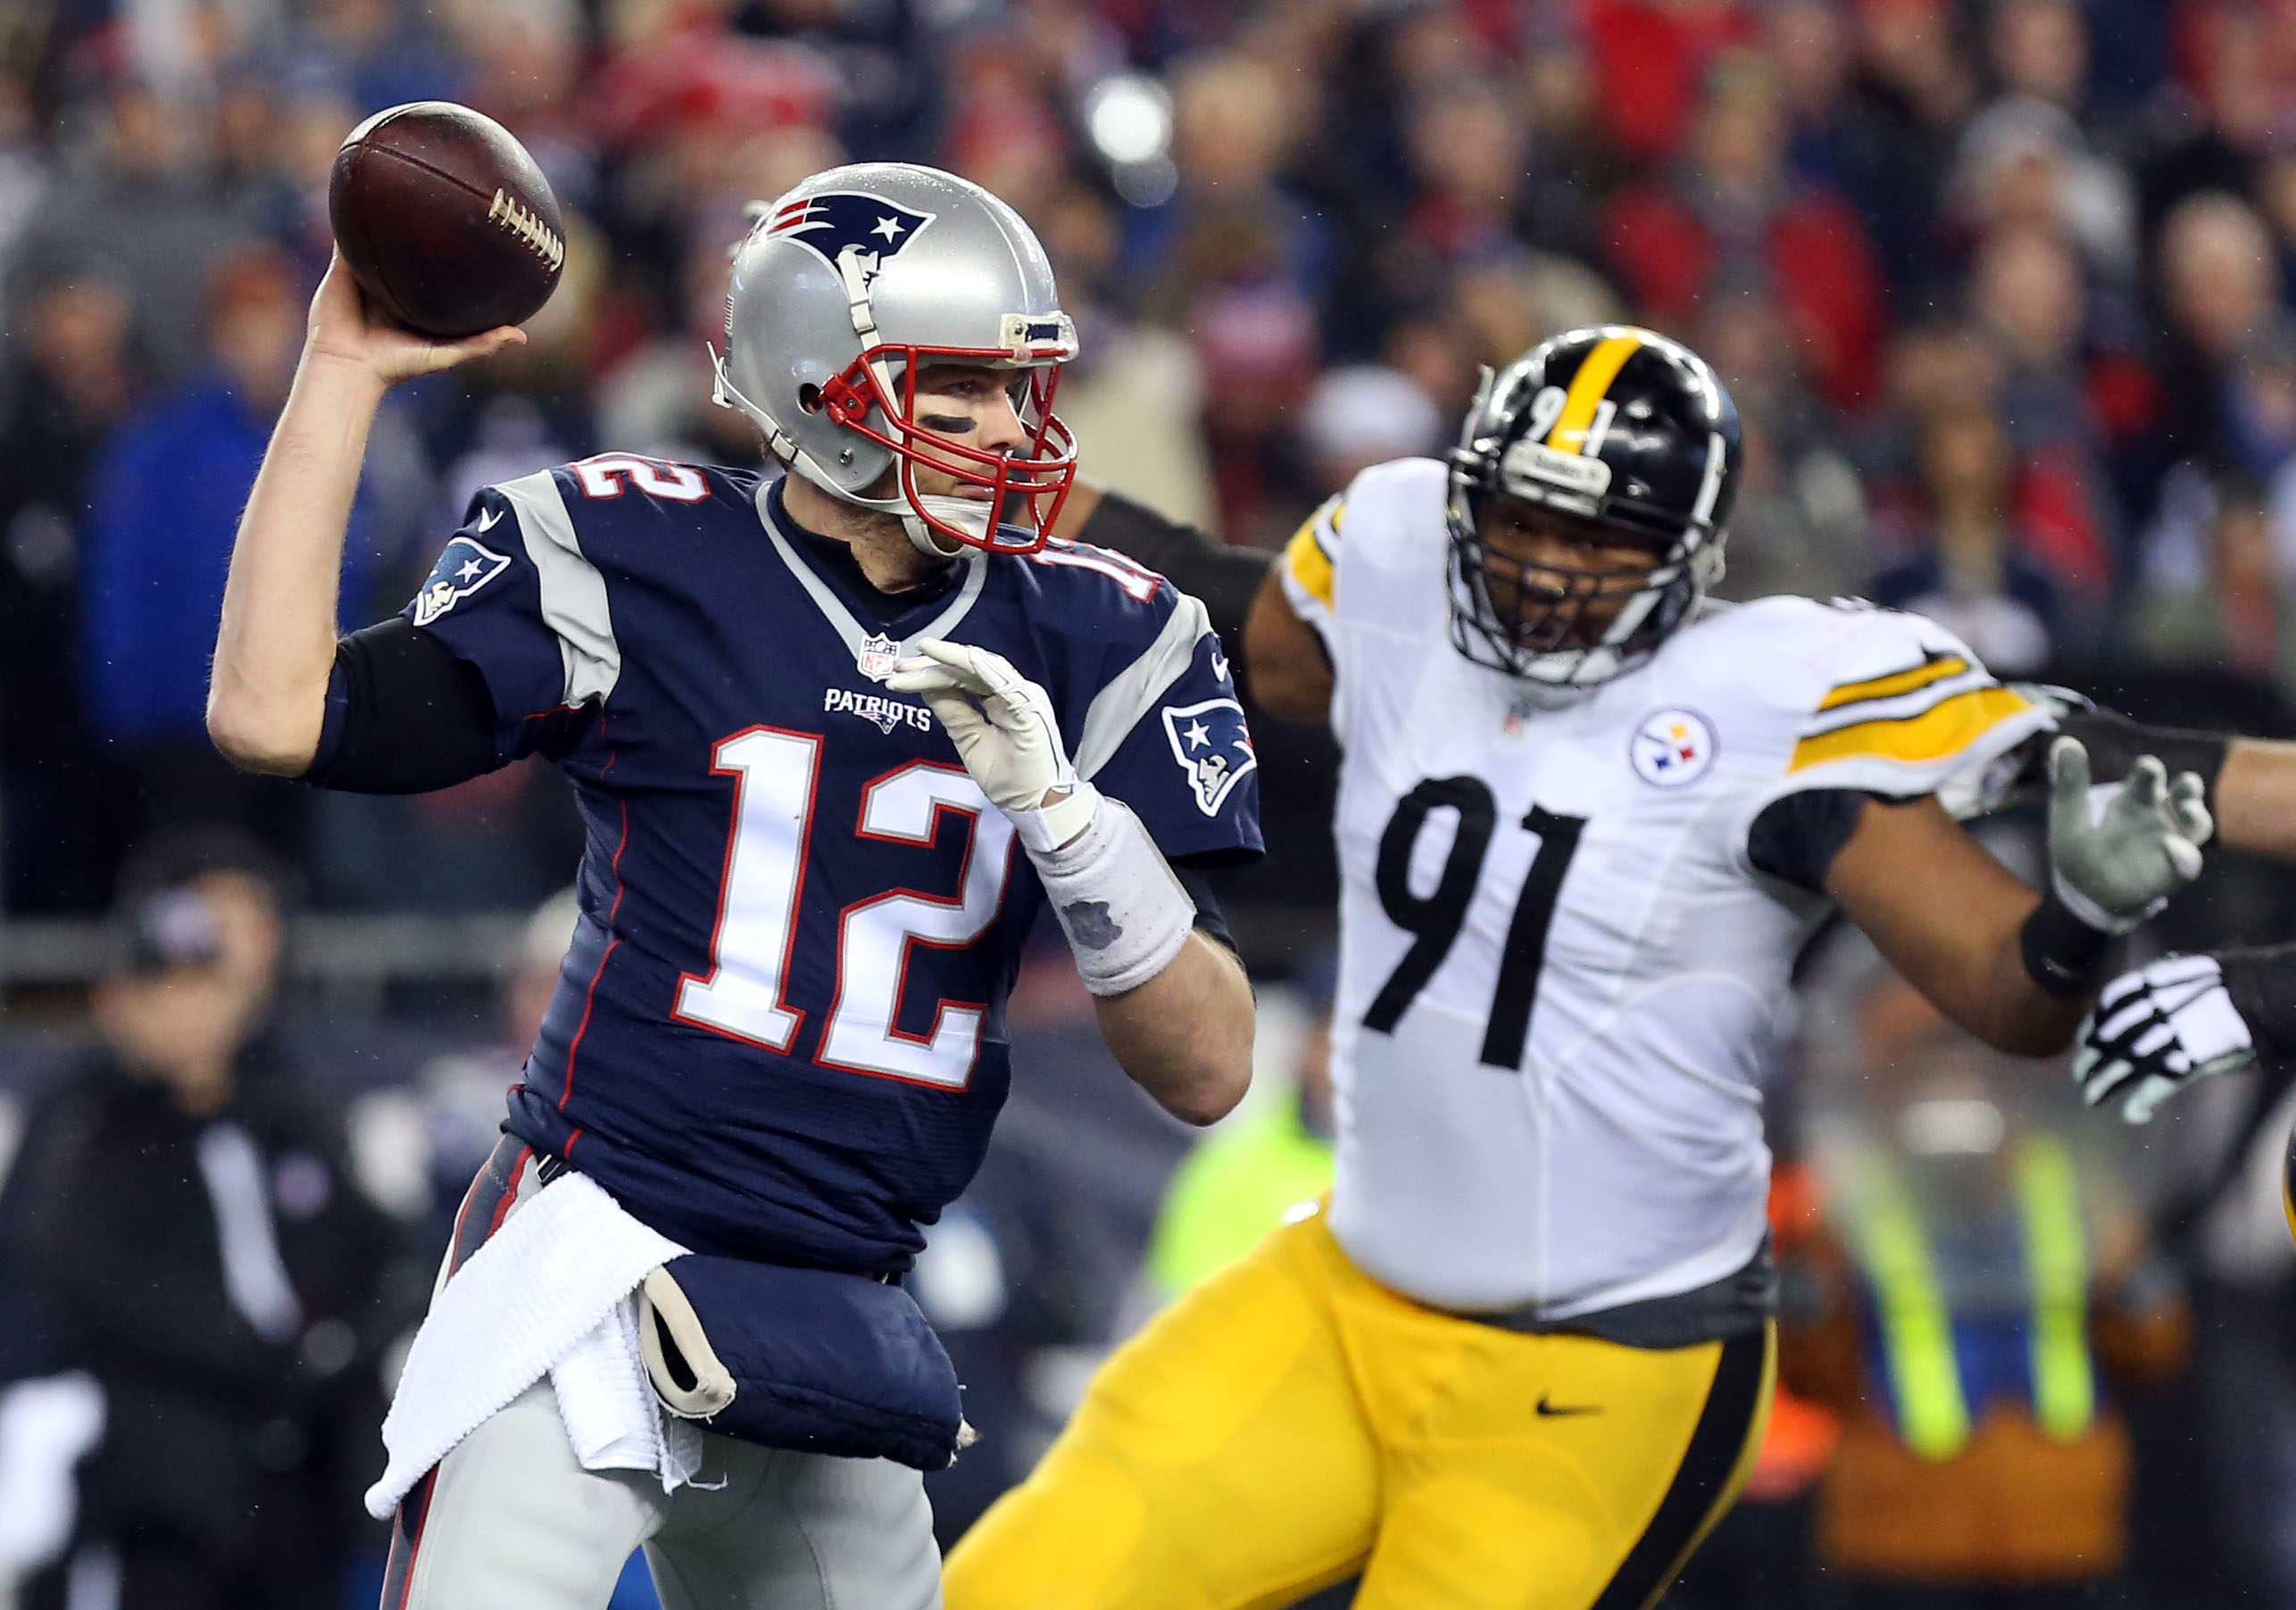 Ben Roethlisberger says he will evaluate his future this offseason